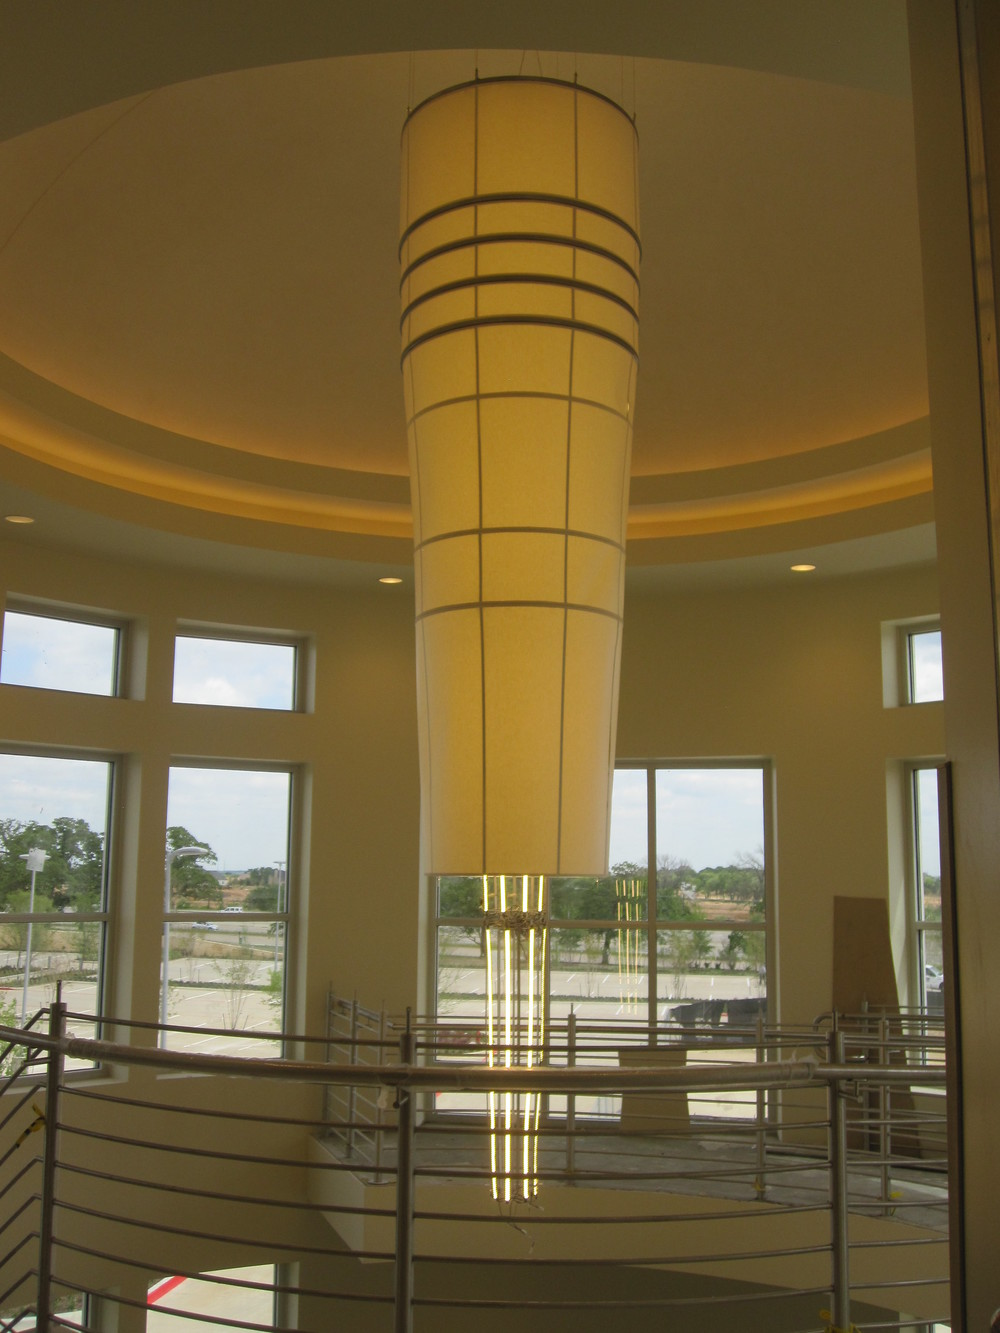 Forest Park Medical Center Southlake Texas 1.JPG